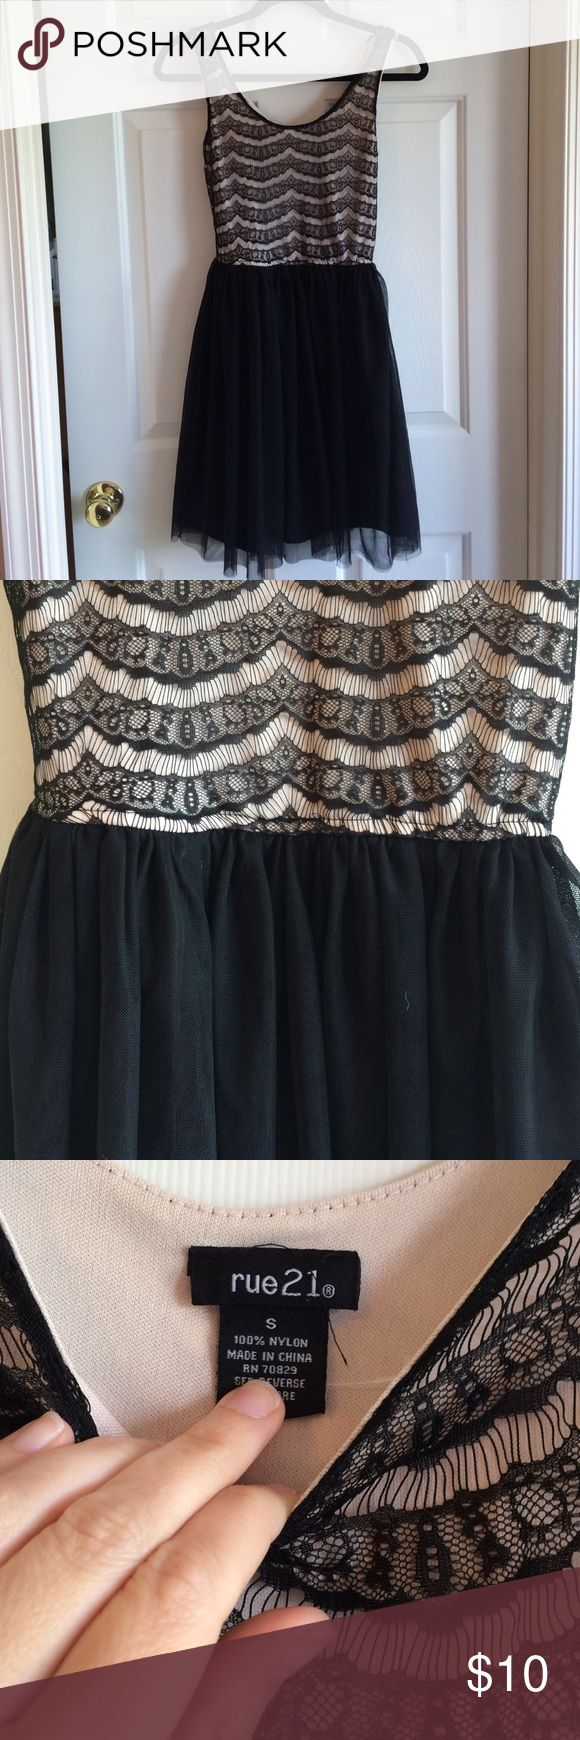 Rue 21 lace dress Very pretty lace top w solid black bottom dress. Junior size S. One snag at top strap. Middle school appropriate. My SD wore to 8th grade dance. Smoke and pet free home. Rue 21 Dresses